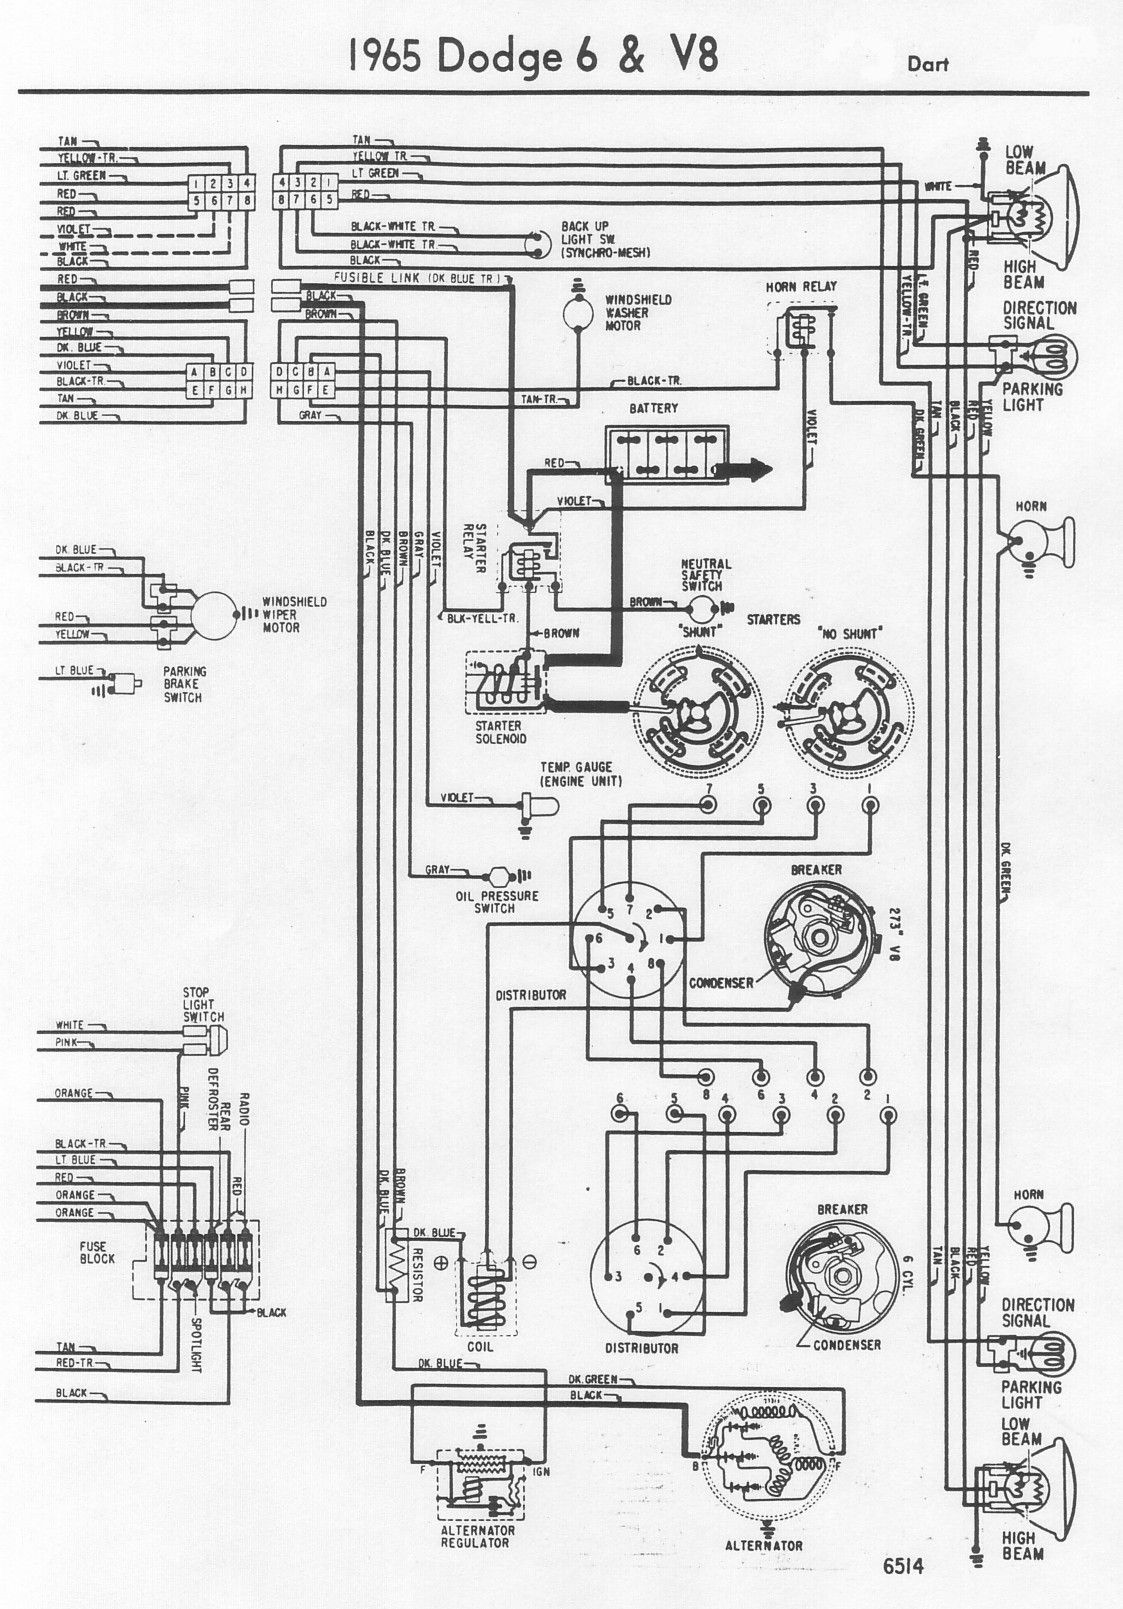 65 Front Wiring Diagram Mopar Muscle Pinterest Dodge Dart 69 Plymouth Road Runner Gt Darts Truck